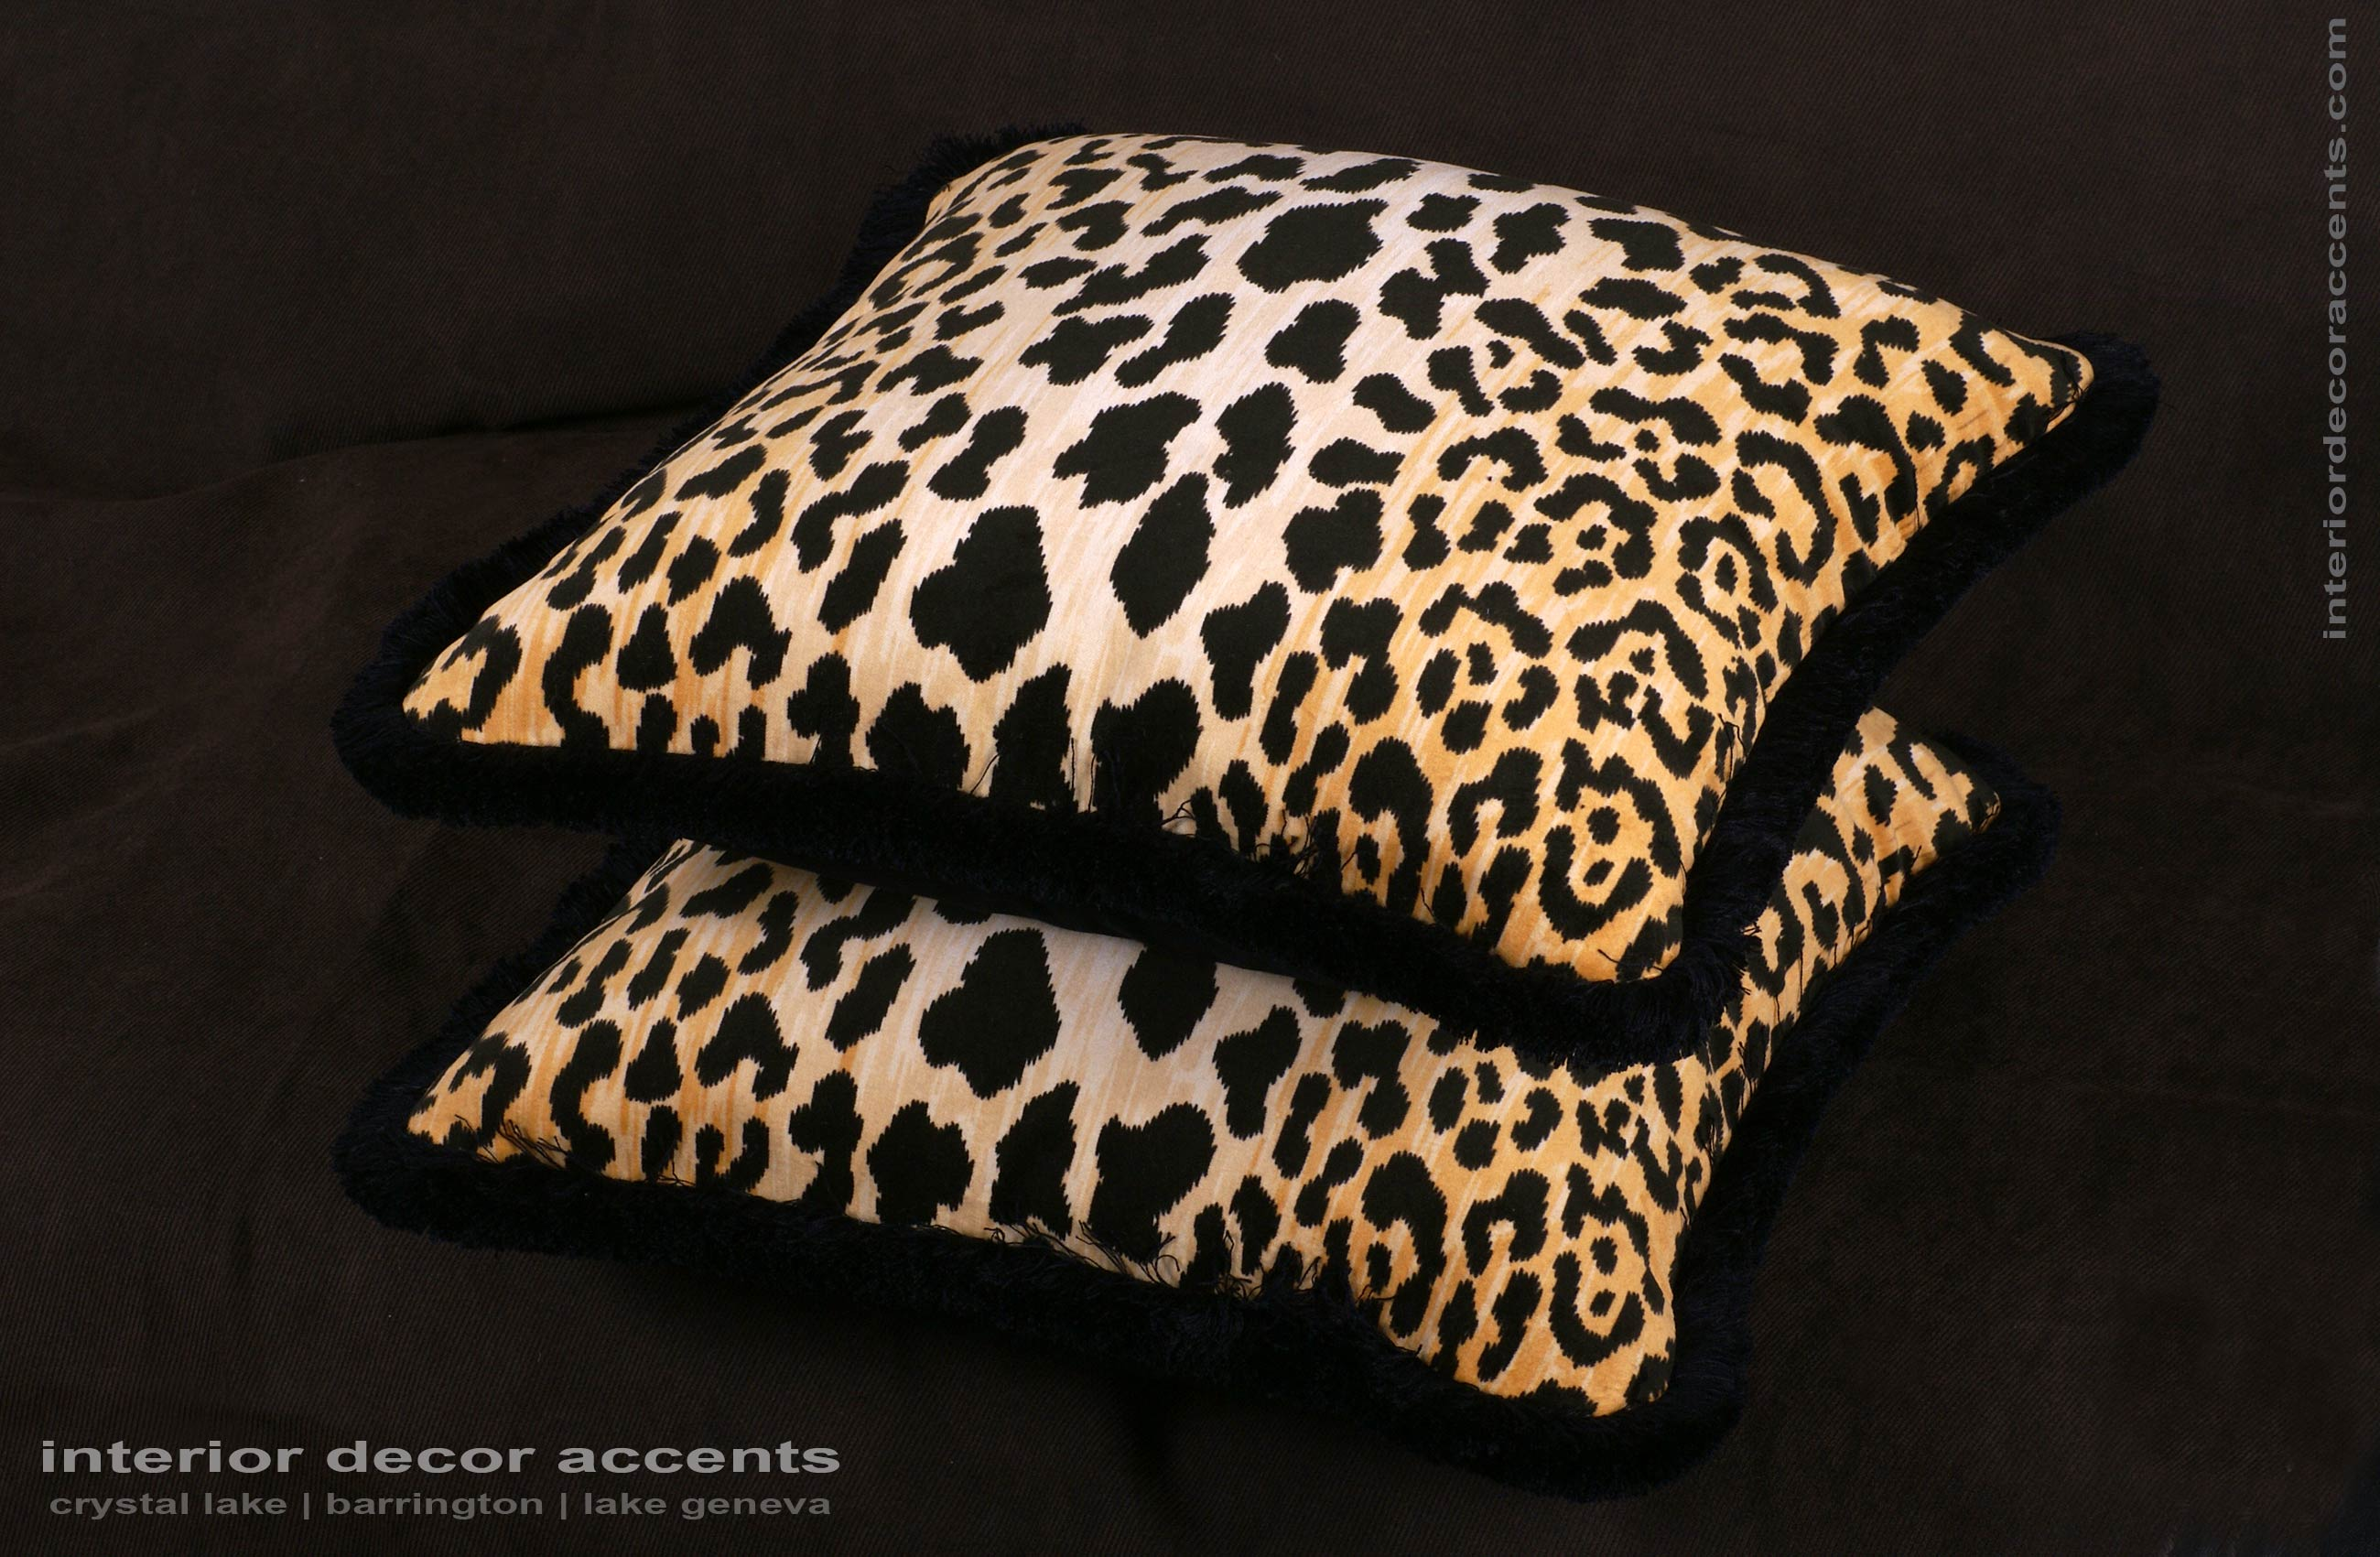 ralph bedding leopard products home and throw pillows aragon enlarged bath pillow lauren